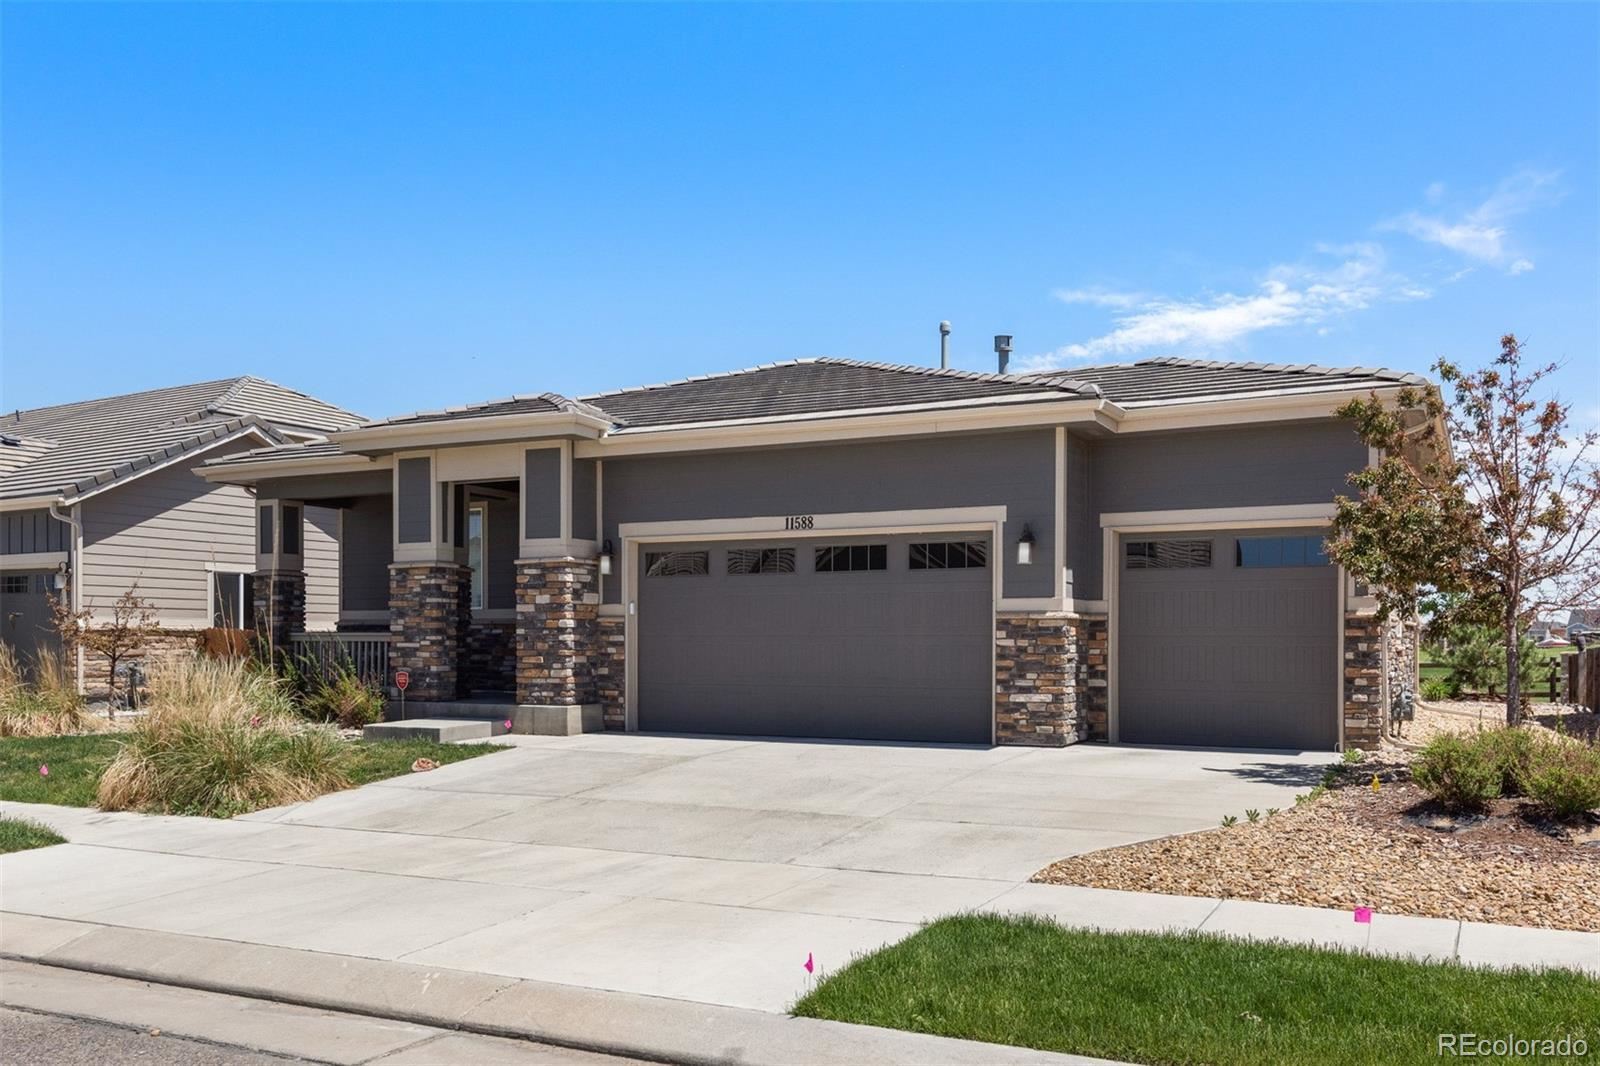 11588 Jasper Street, Commerce City, CO 80022 - #: 9084217